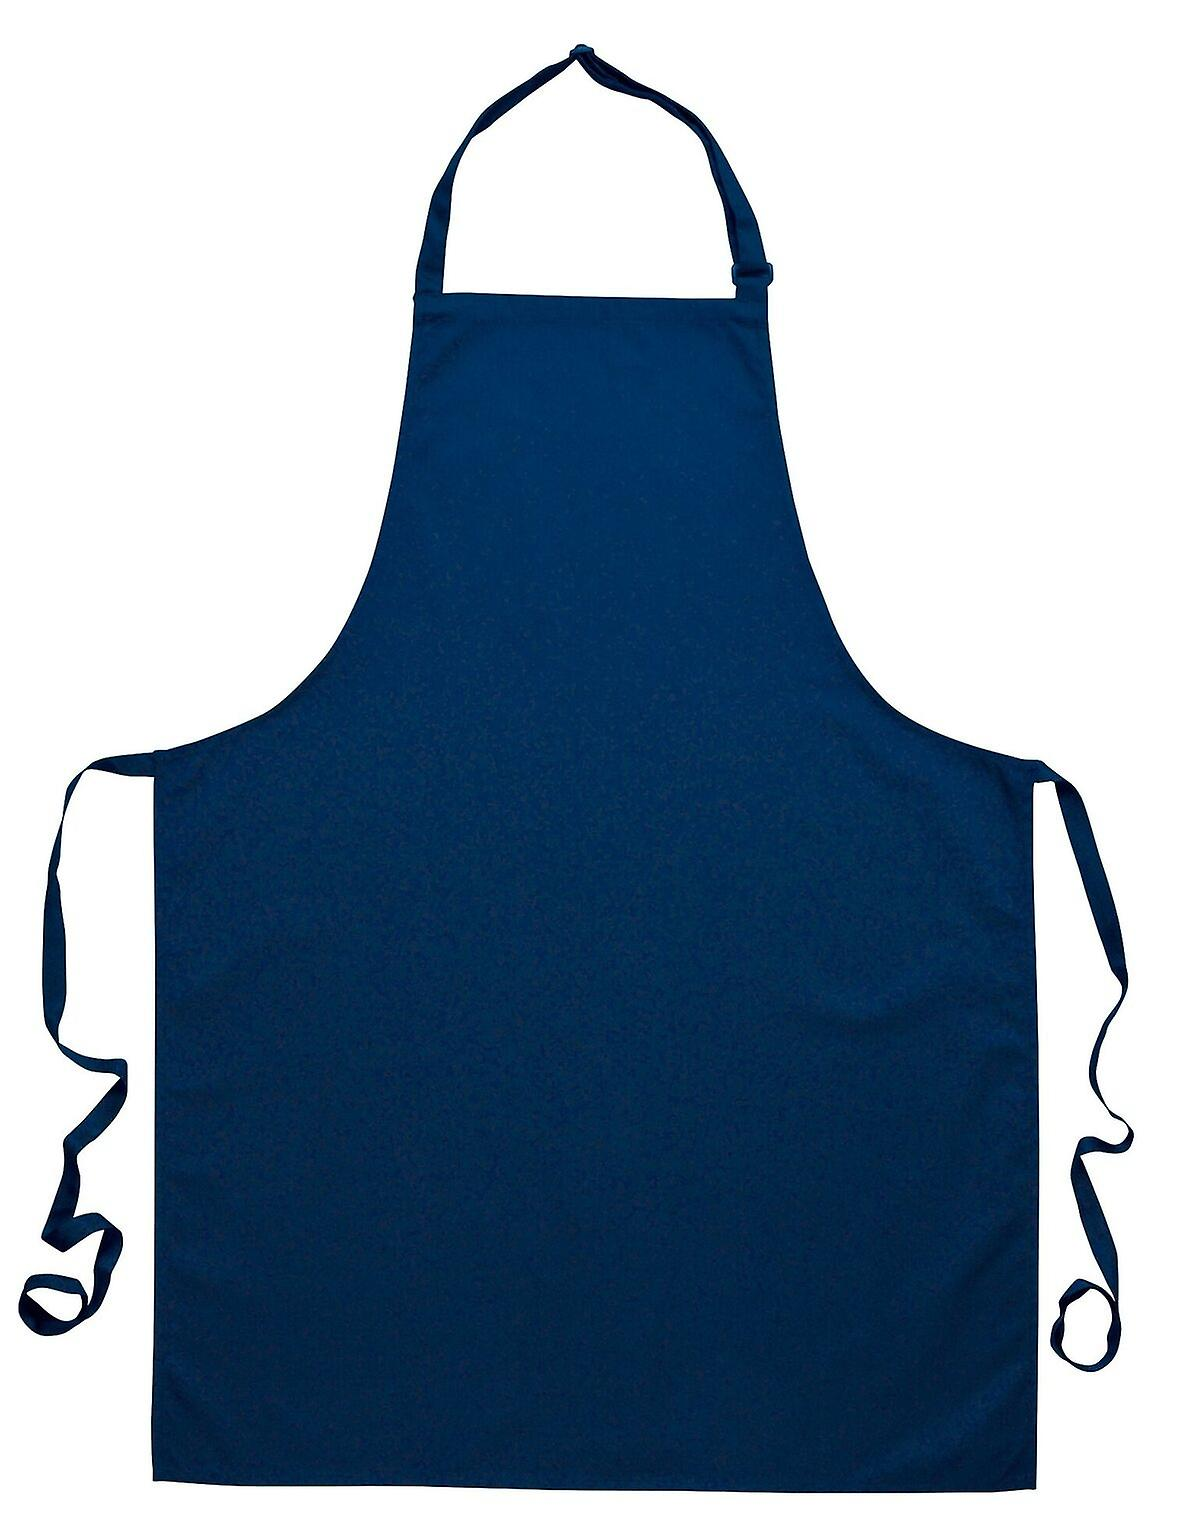 PORTWEST PolyCotton Bib Apron - Navy One Size Chef Catering Work Apron